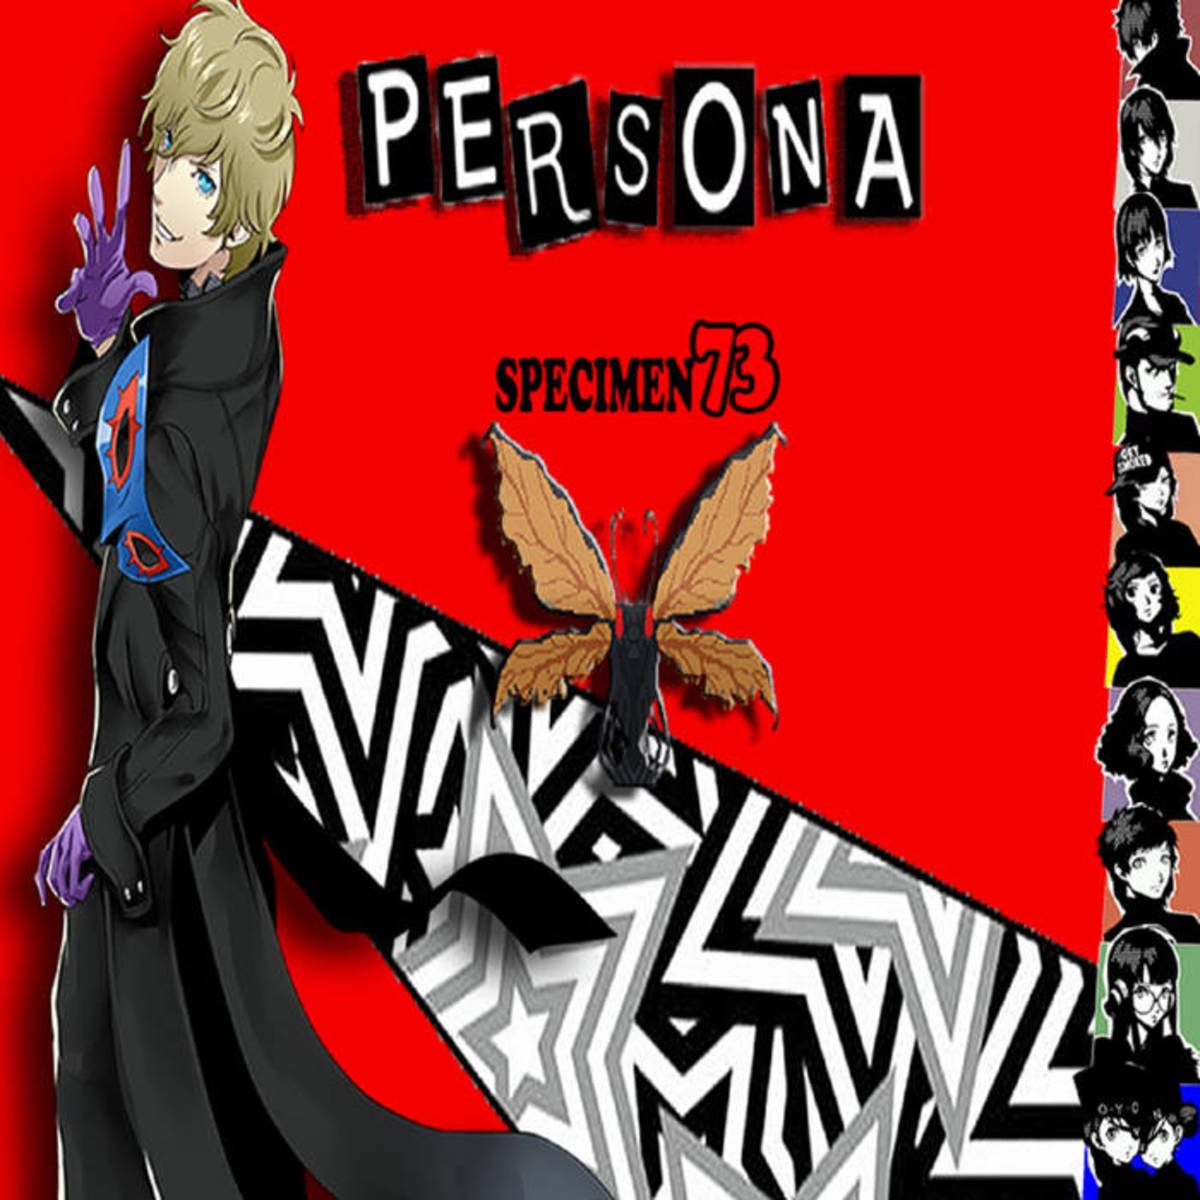 """Synth Album Review: """"Persona"""" by Specimen 73"""